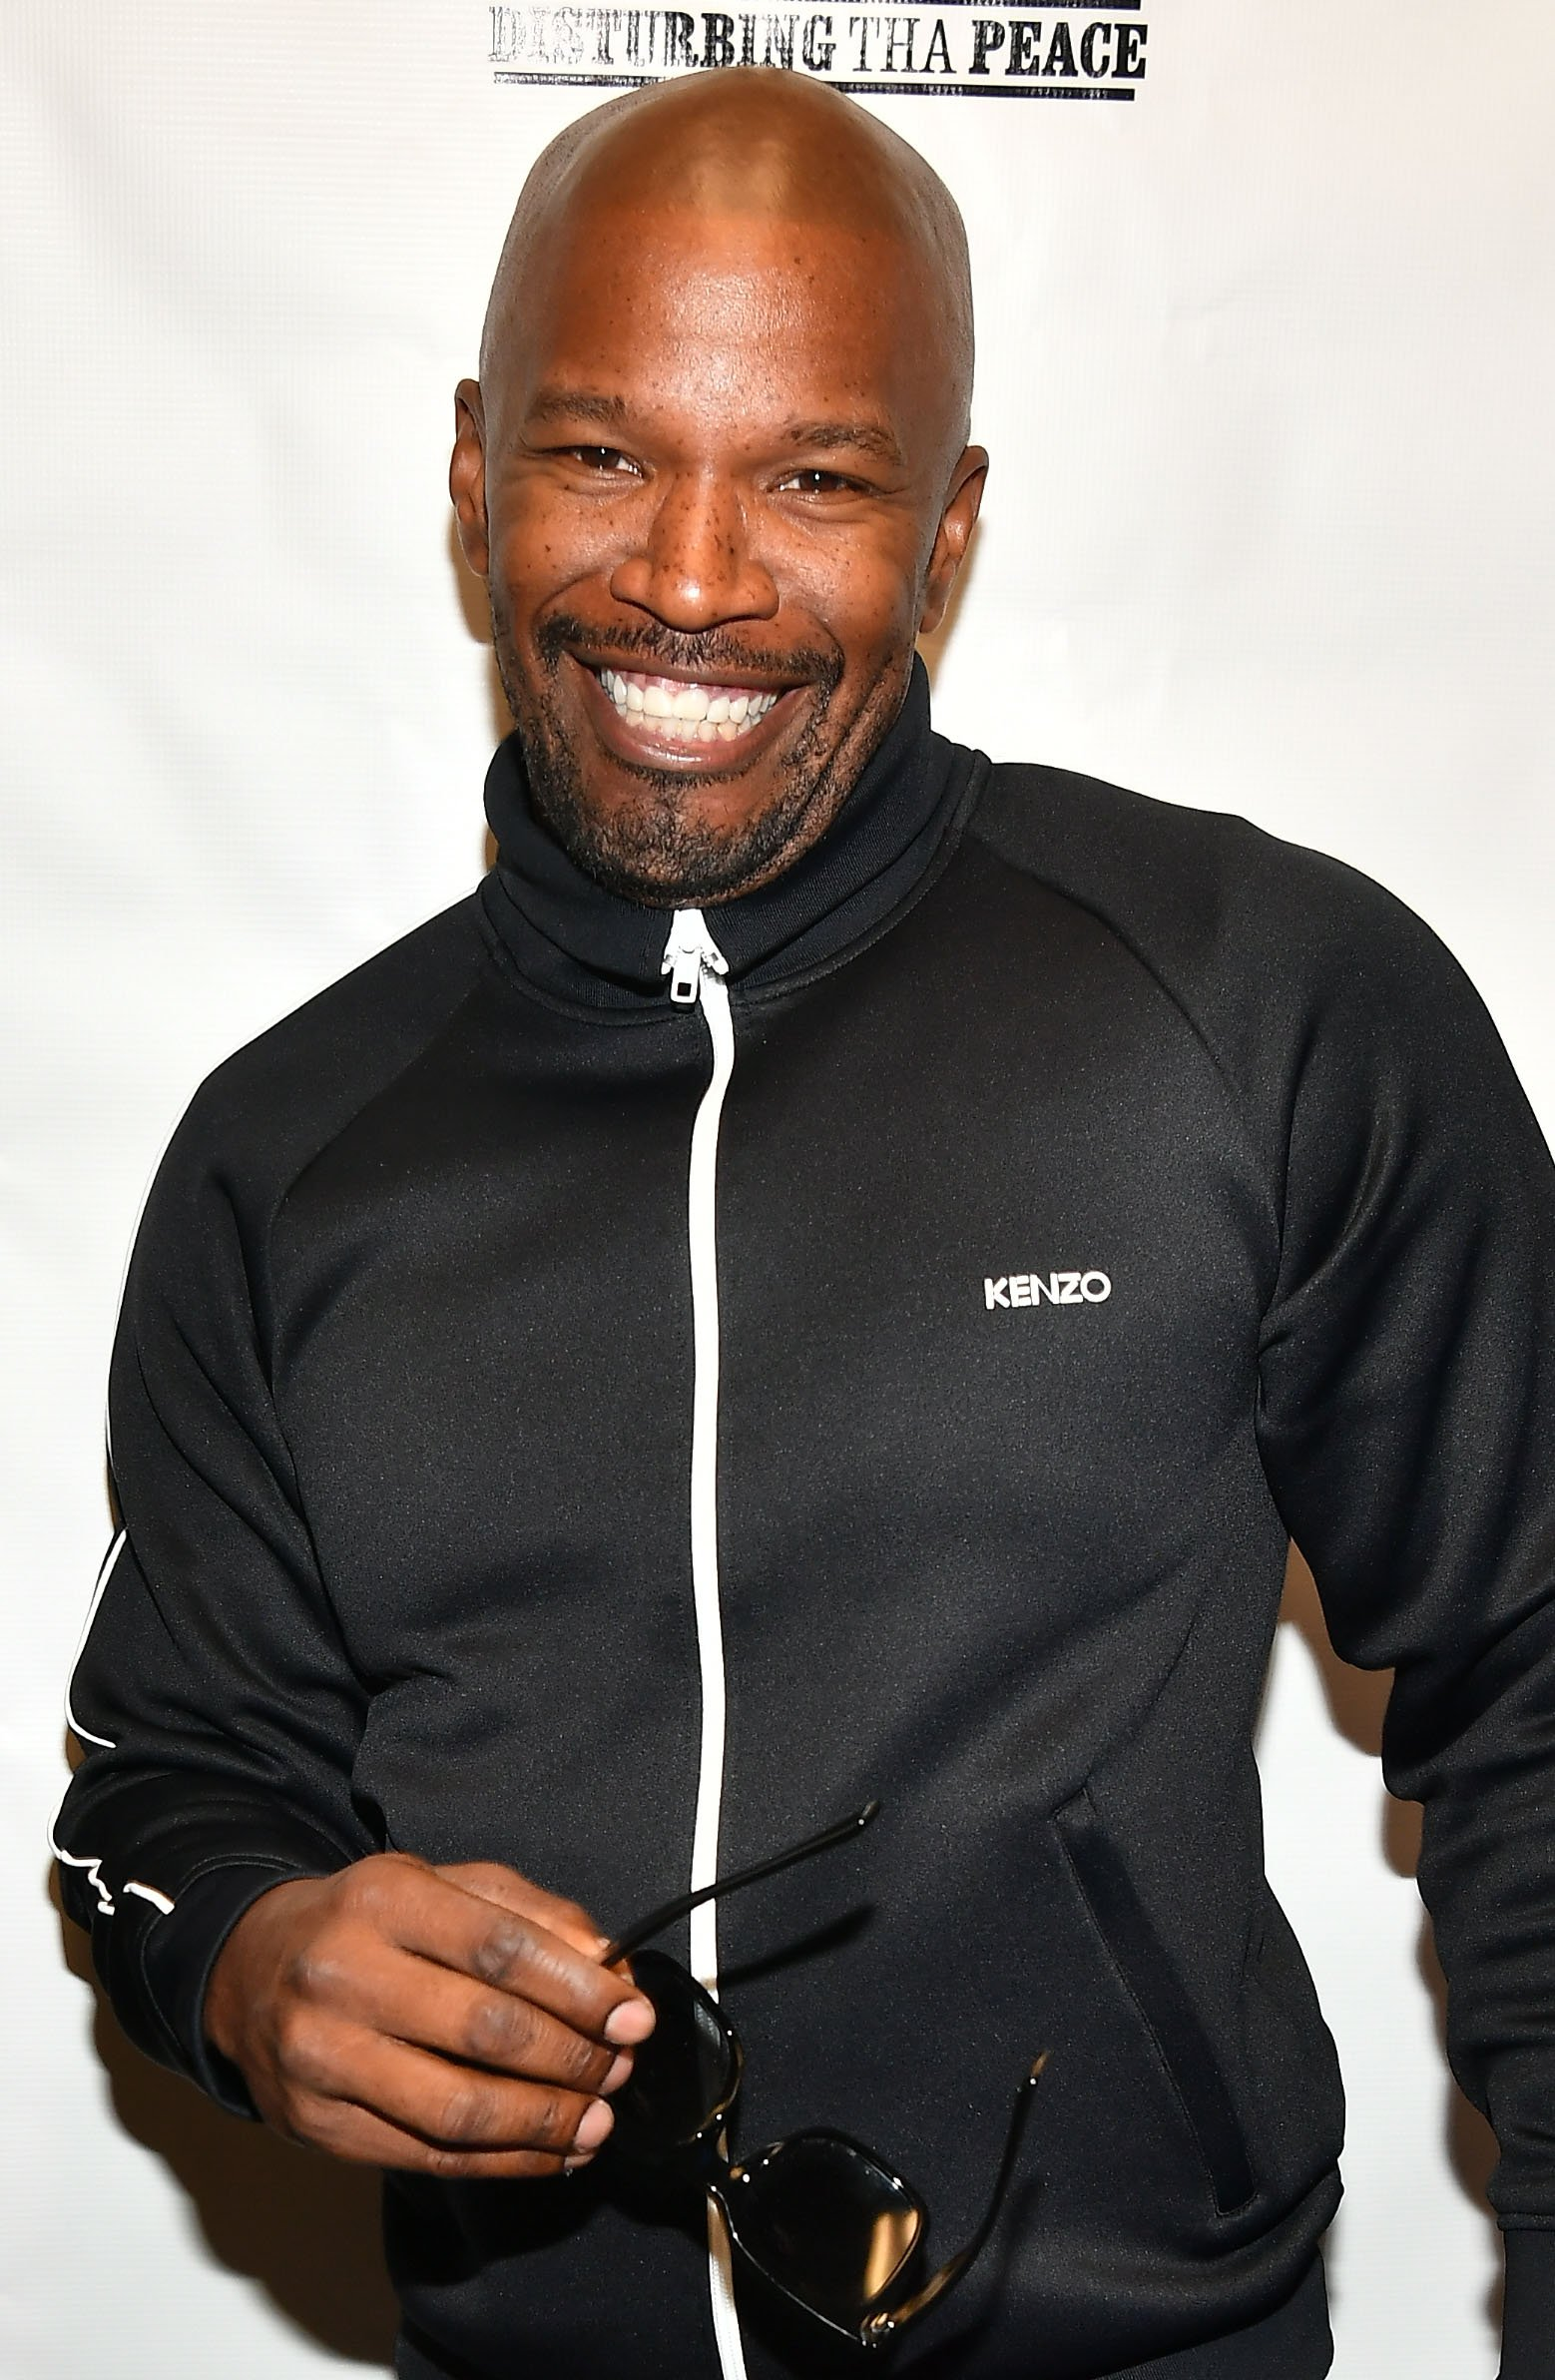 Jamie Foxx attends 2018 LudaDay Celebrity Basketball Game at Morehouse College - Forbes Arena on September 2, 2018, in Atlanta, Georgia. | Source: Getty Images.